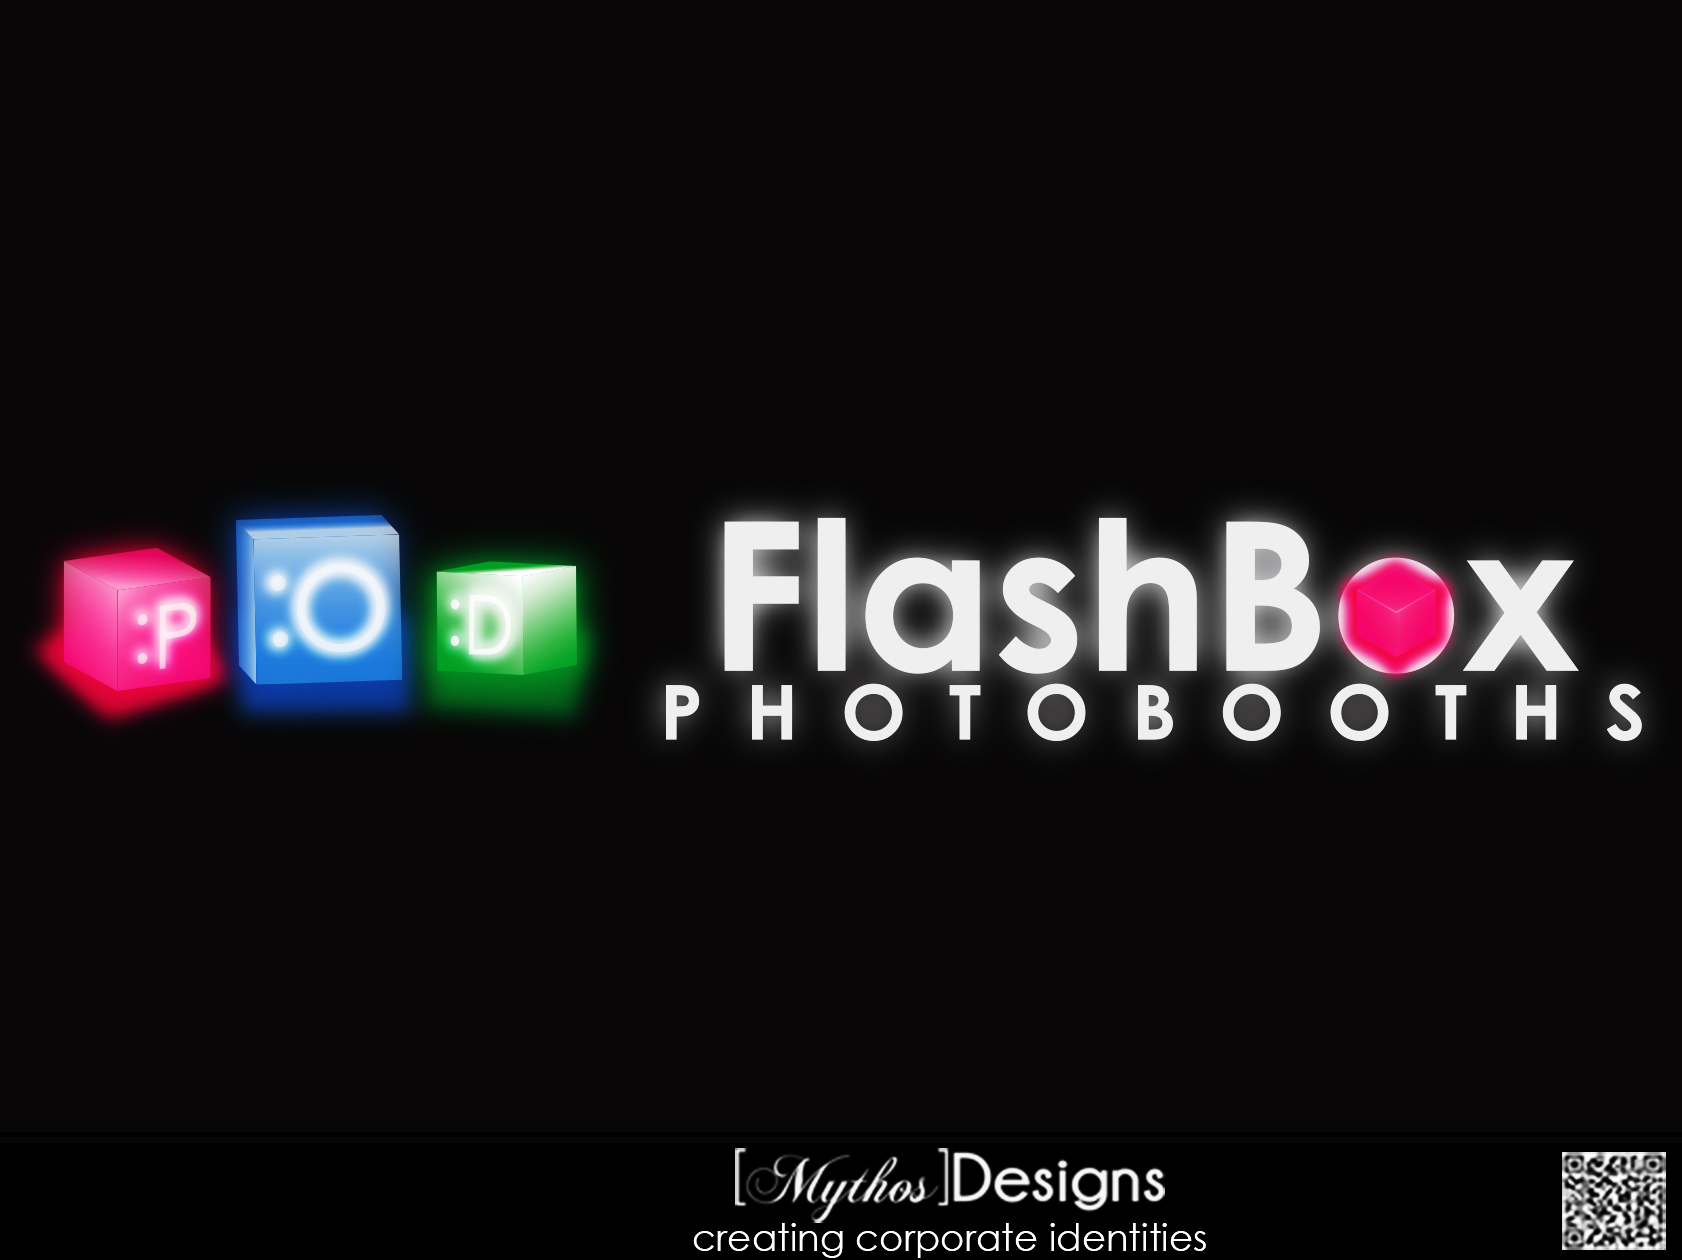 Logo Design by Mythos Designs - Entry No. 144 in the Logo Design Contest New Logo Design for FlashBox Photobooths.